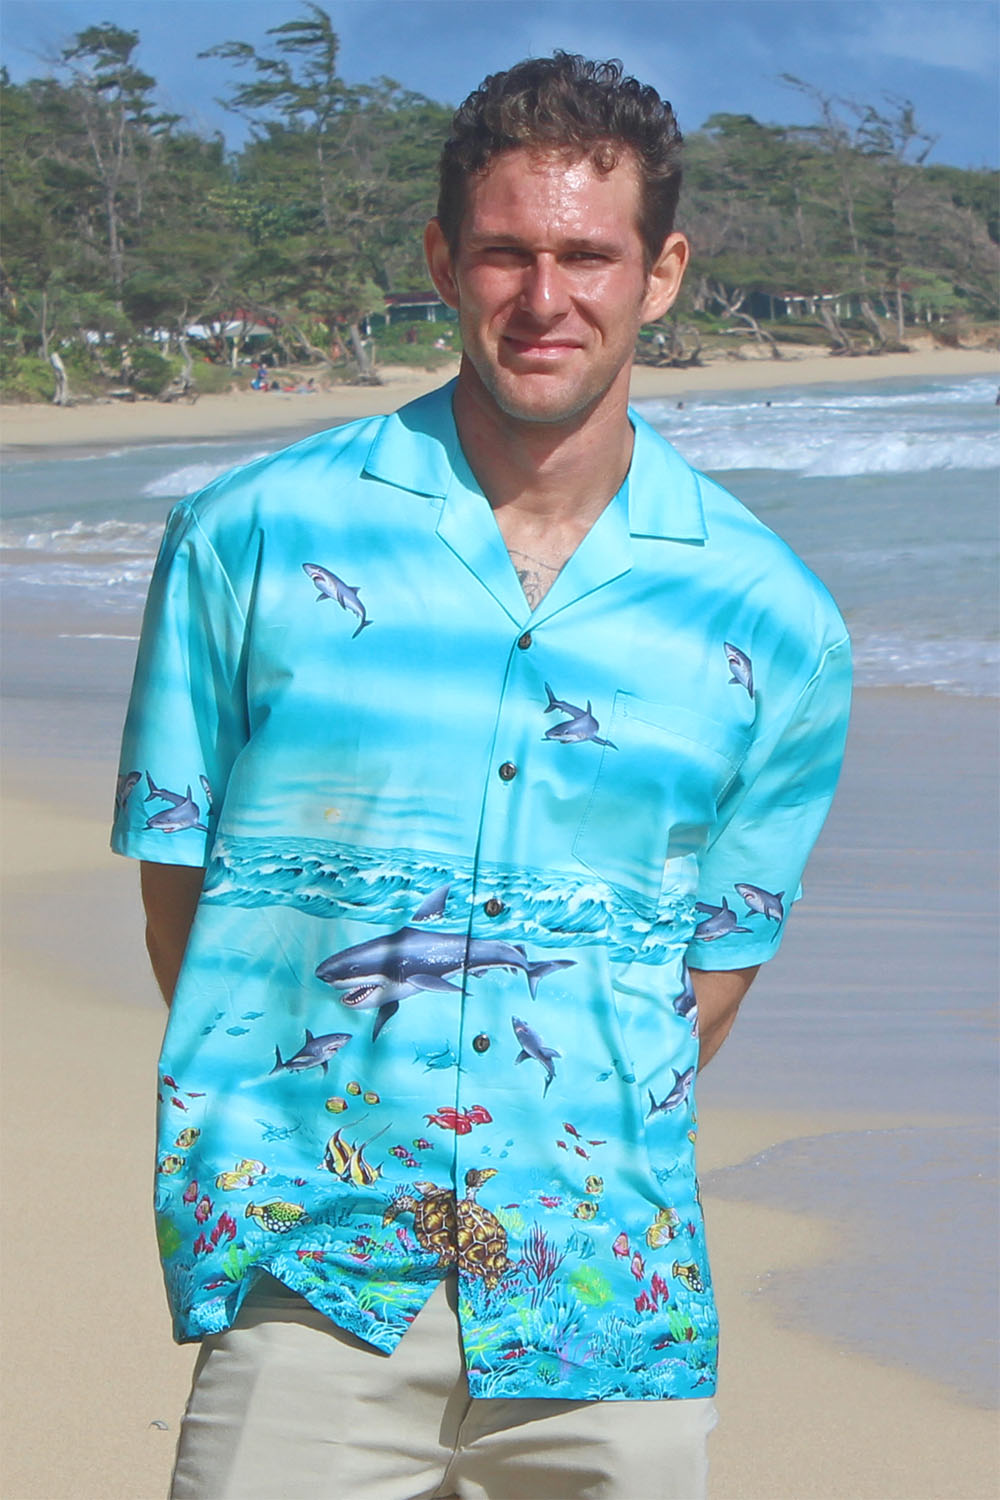 Yves Shark Storm border print Hawaiian shirt made of 100% cotton